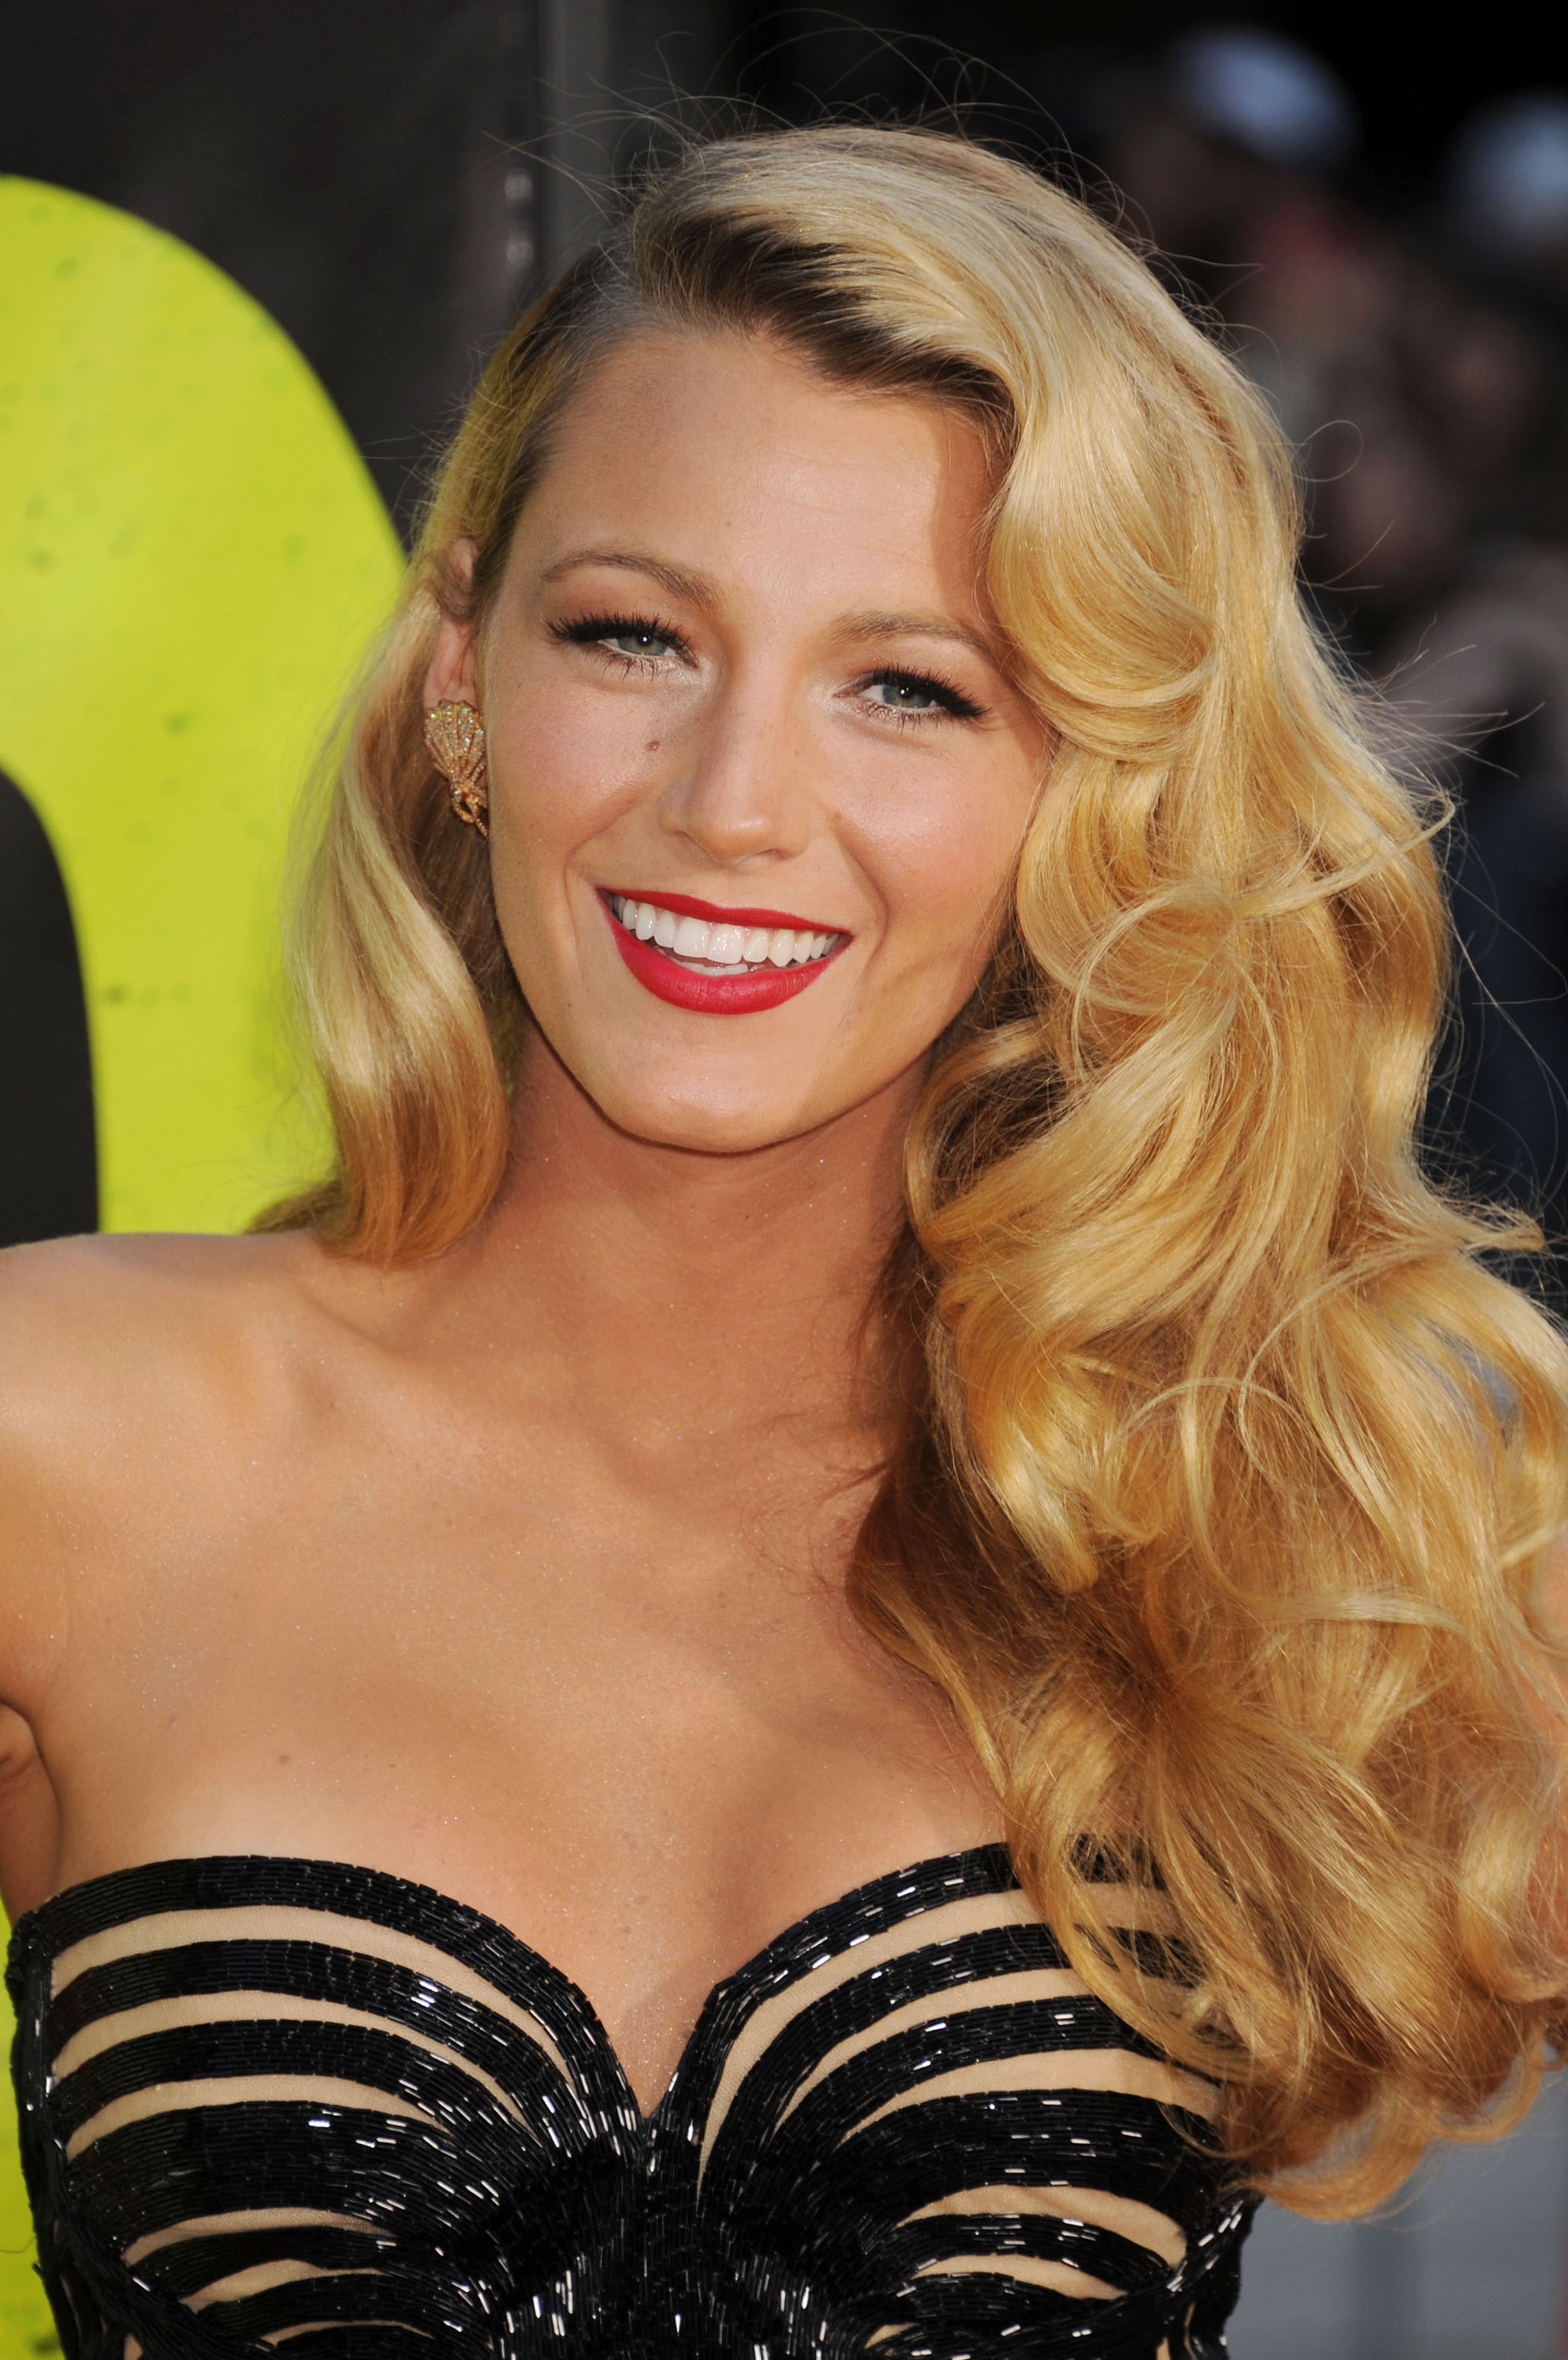 Blake Lively's Hair Stylist Only Uses This One Tool ... Blake Lively